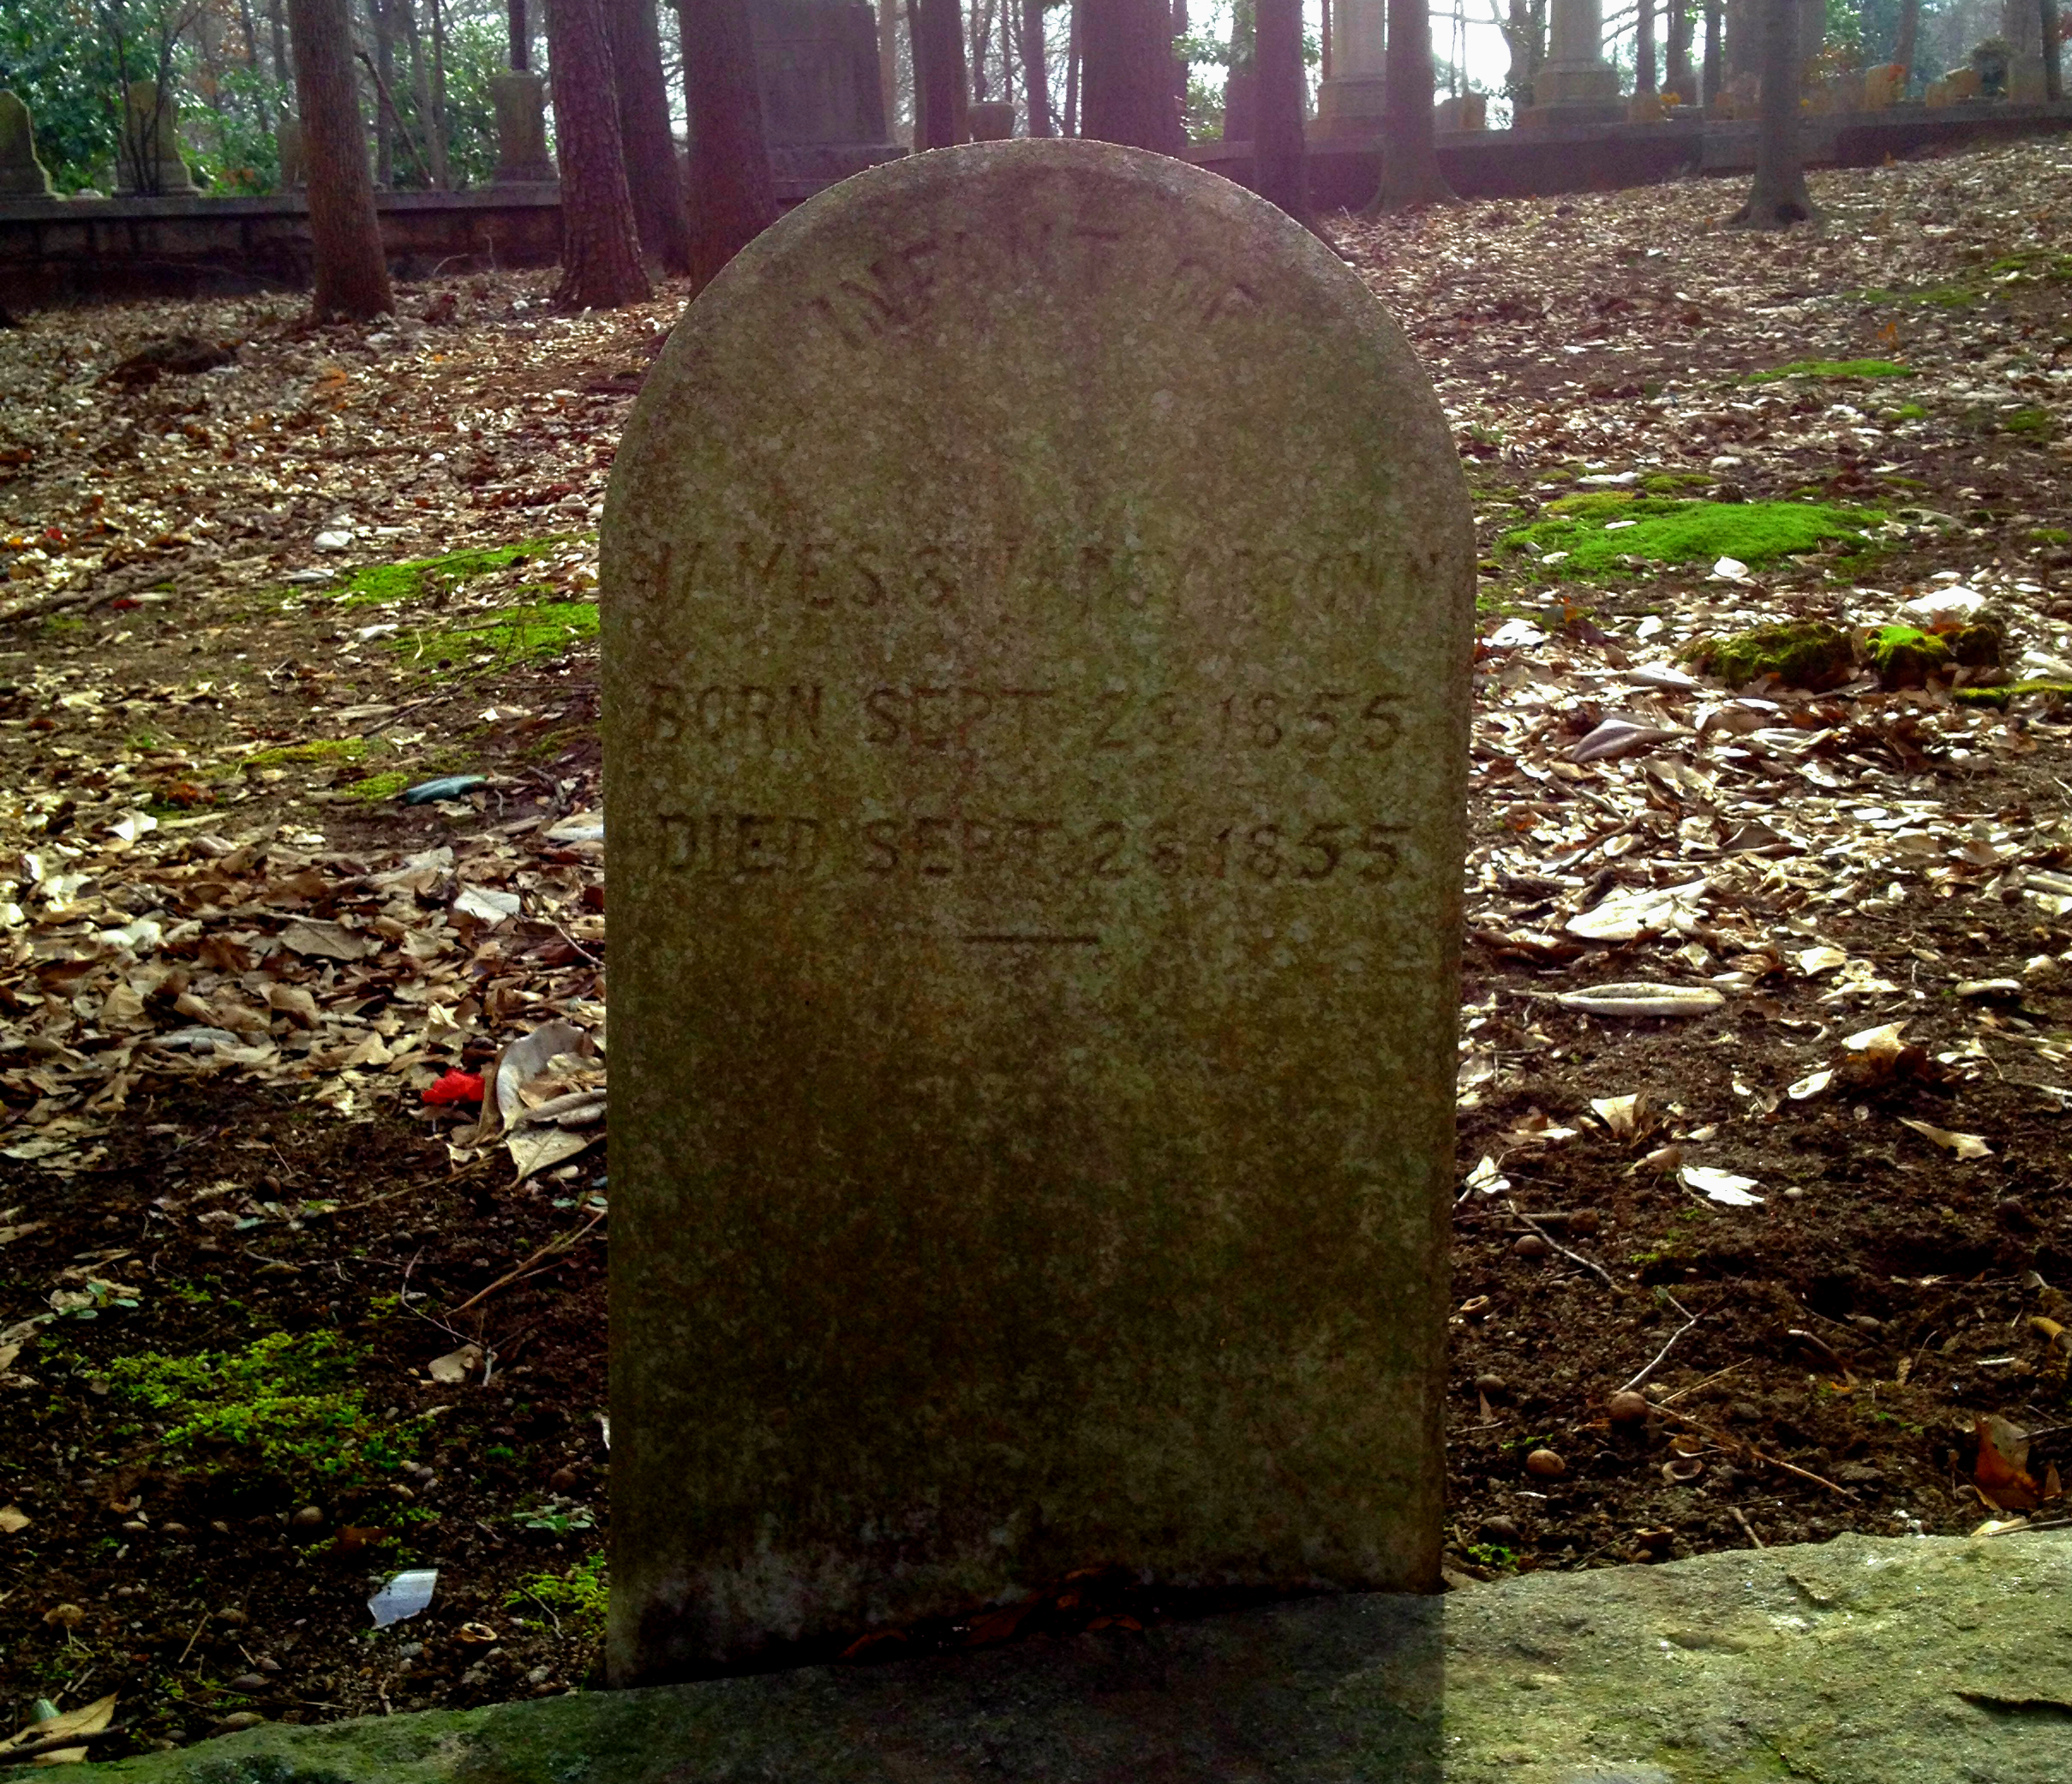 Another Infant of the Browns Buried in 1855 in Sylvester Cemetery in East Atlanta - History Atlanta 2014